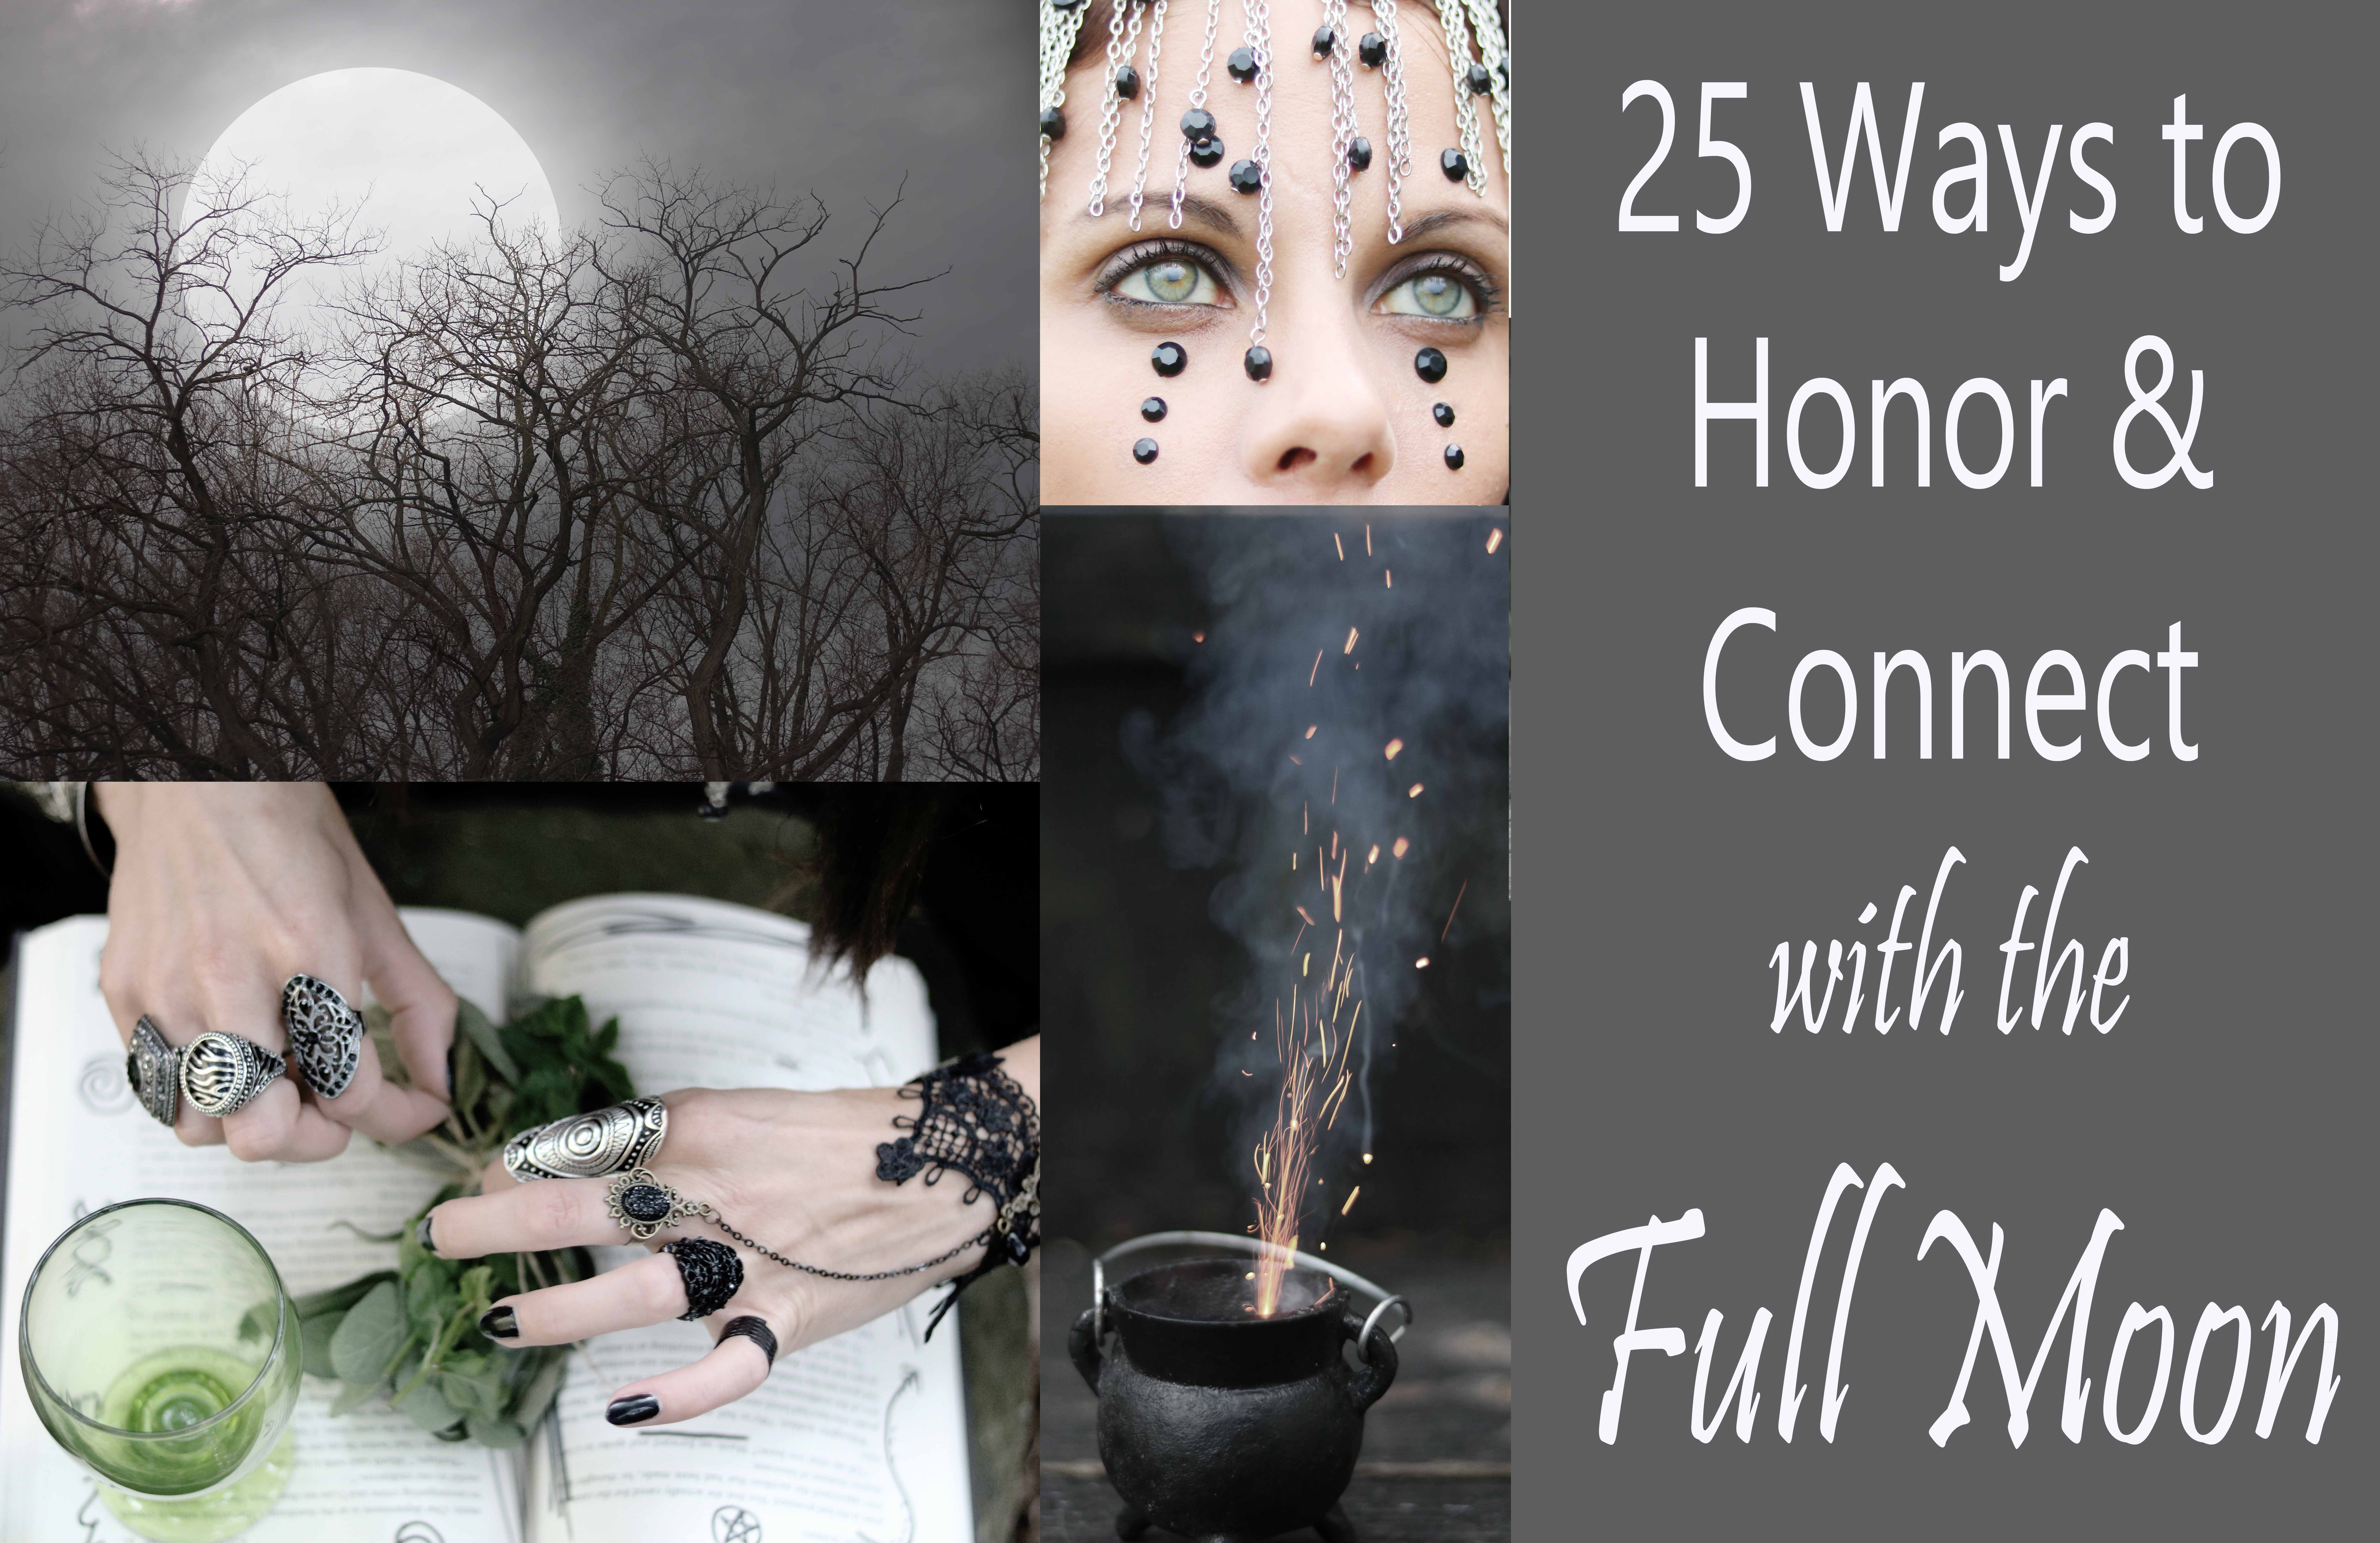 25 ways to honor the full moon